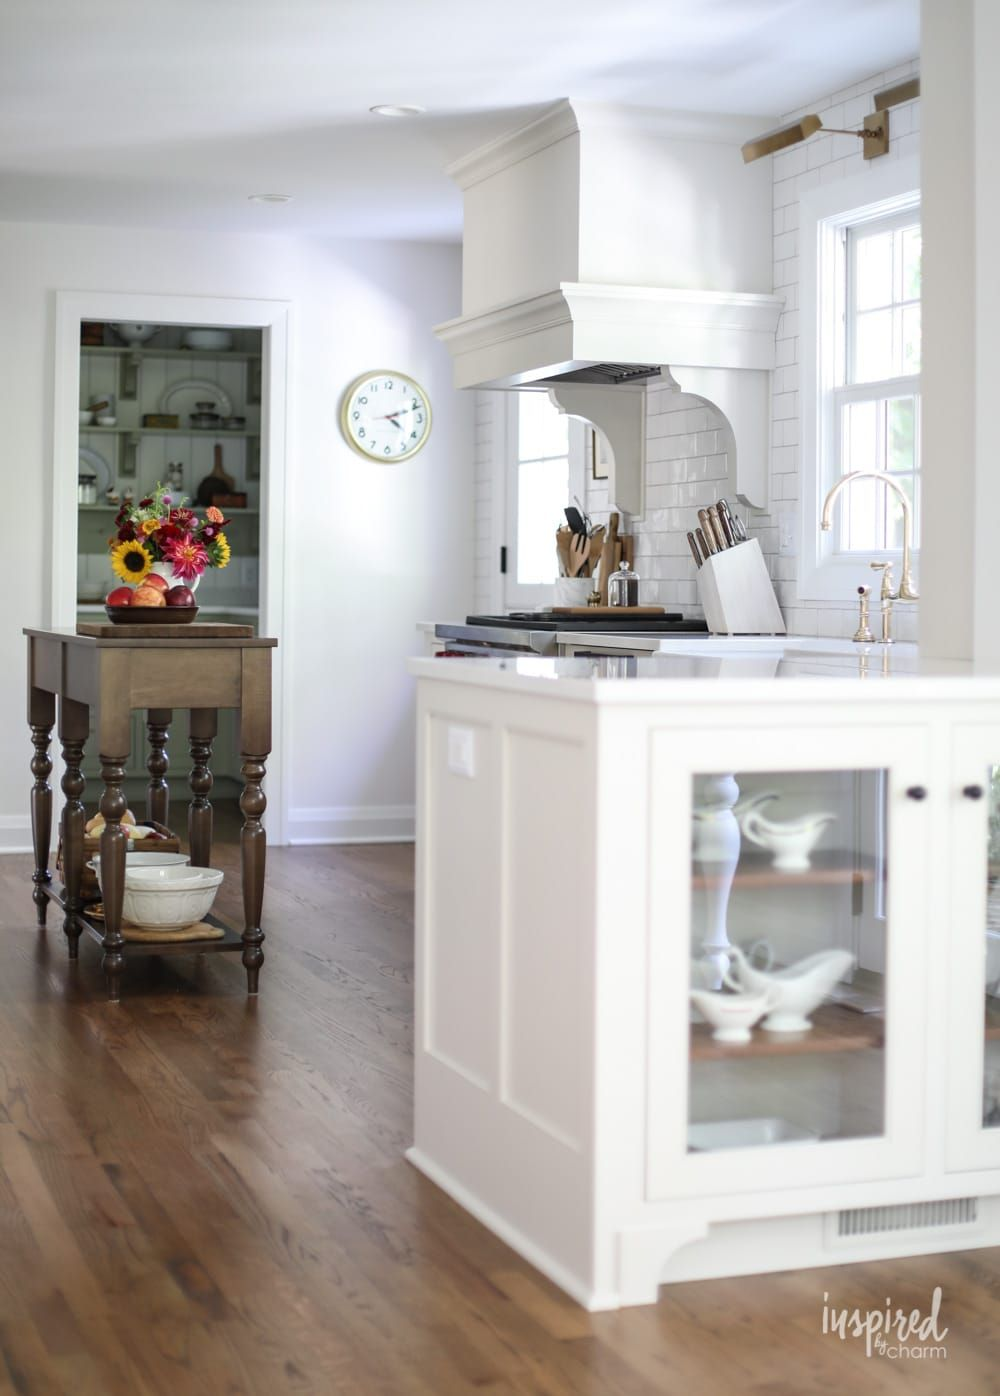 Bayberry Kitchen Remodel Reveal - Inspired by Charm Kitchen Makeover